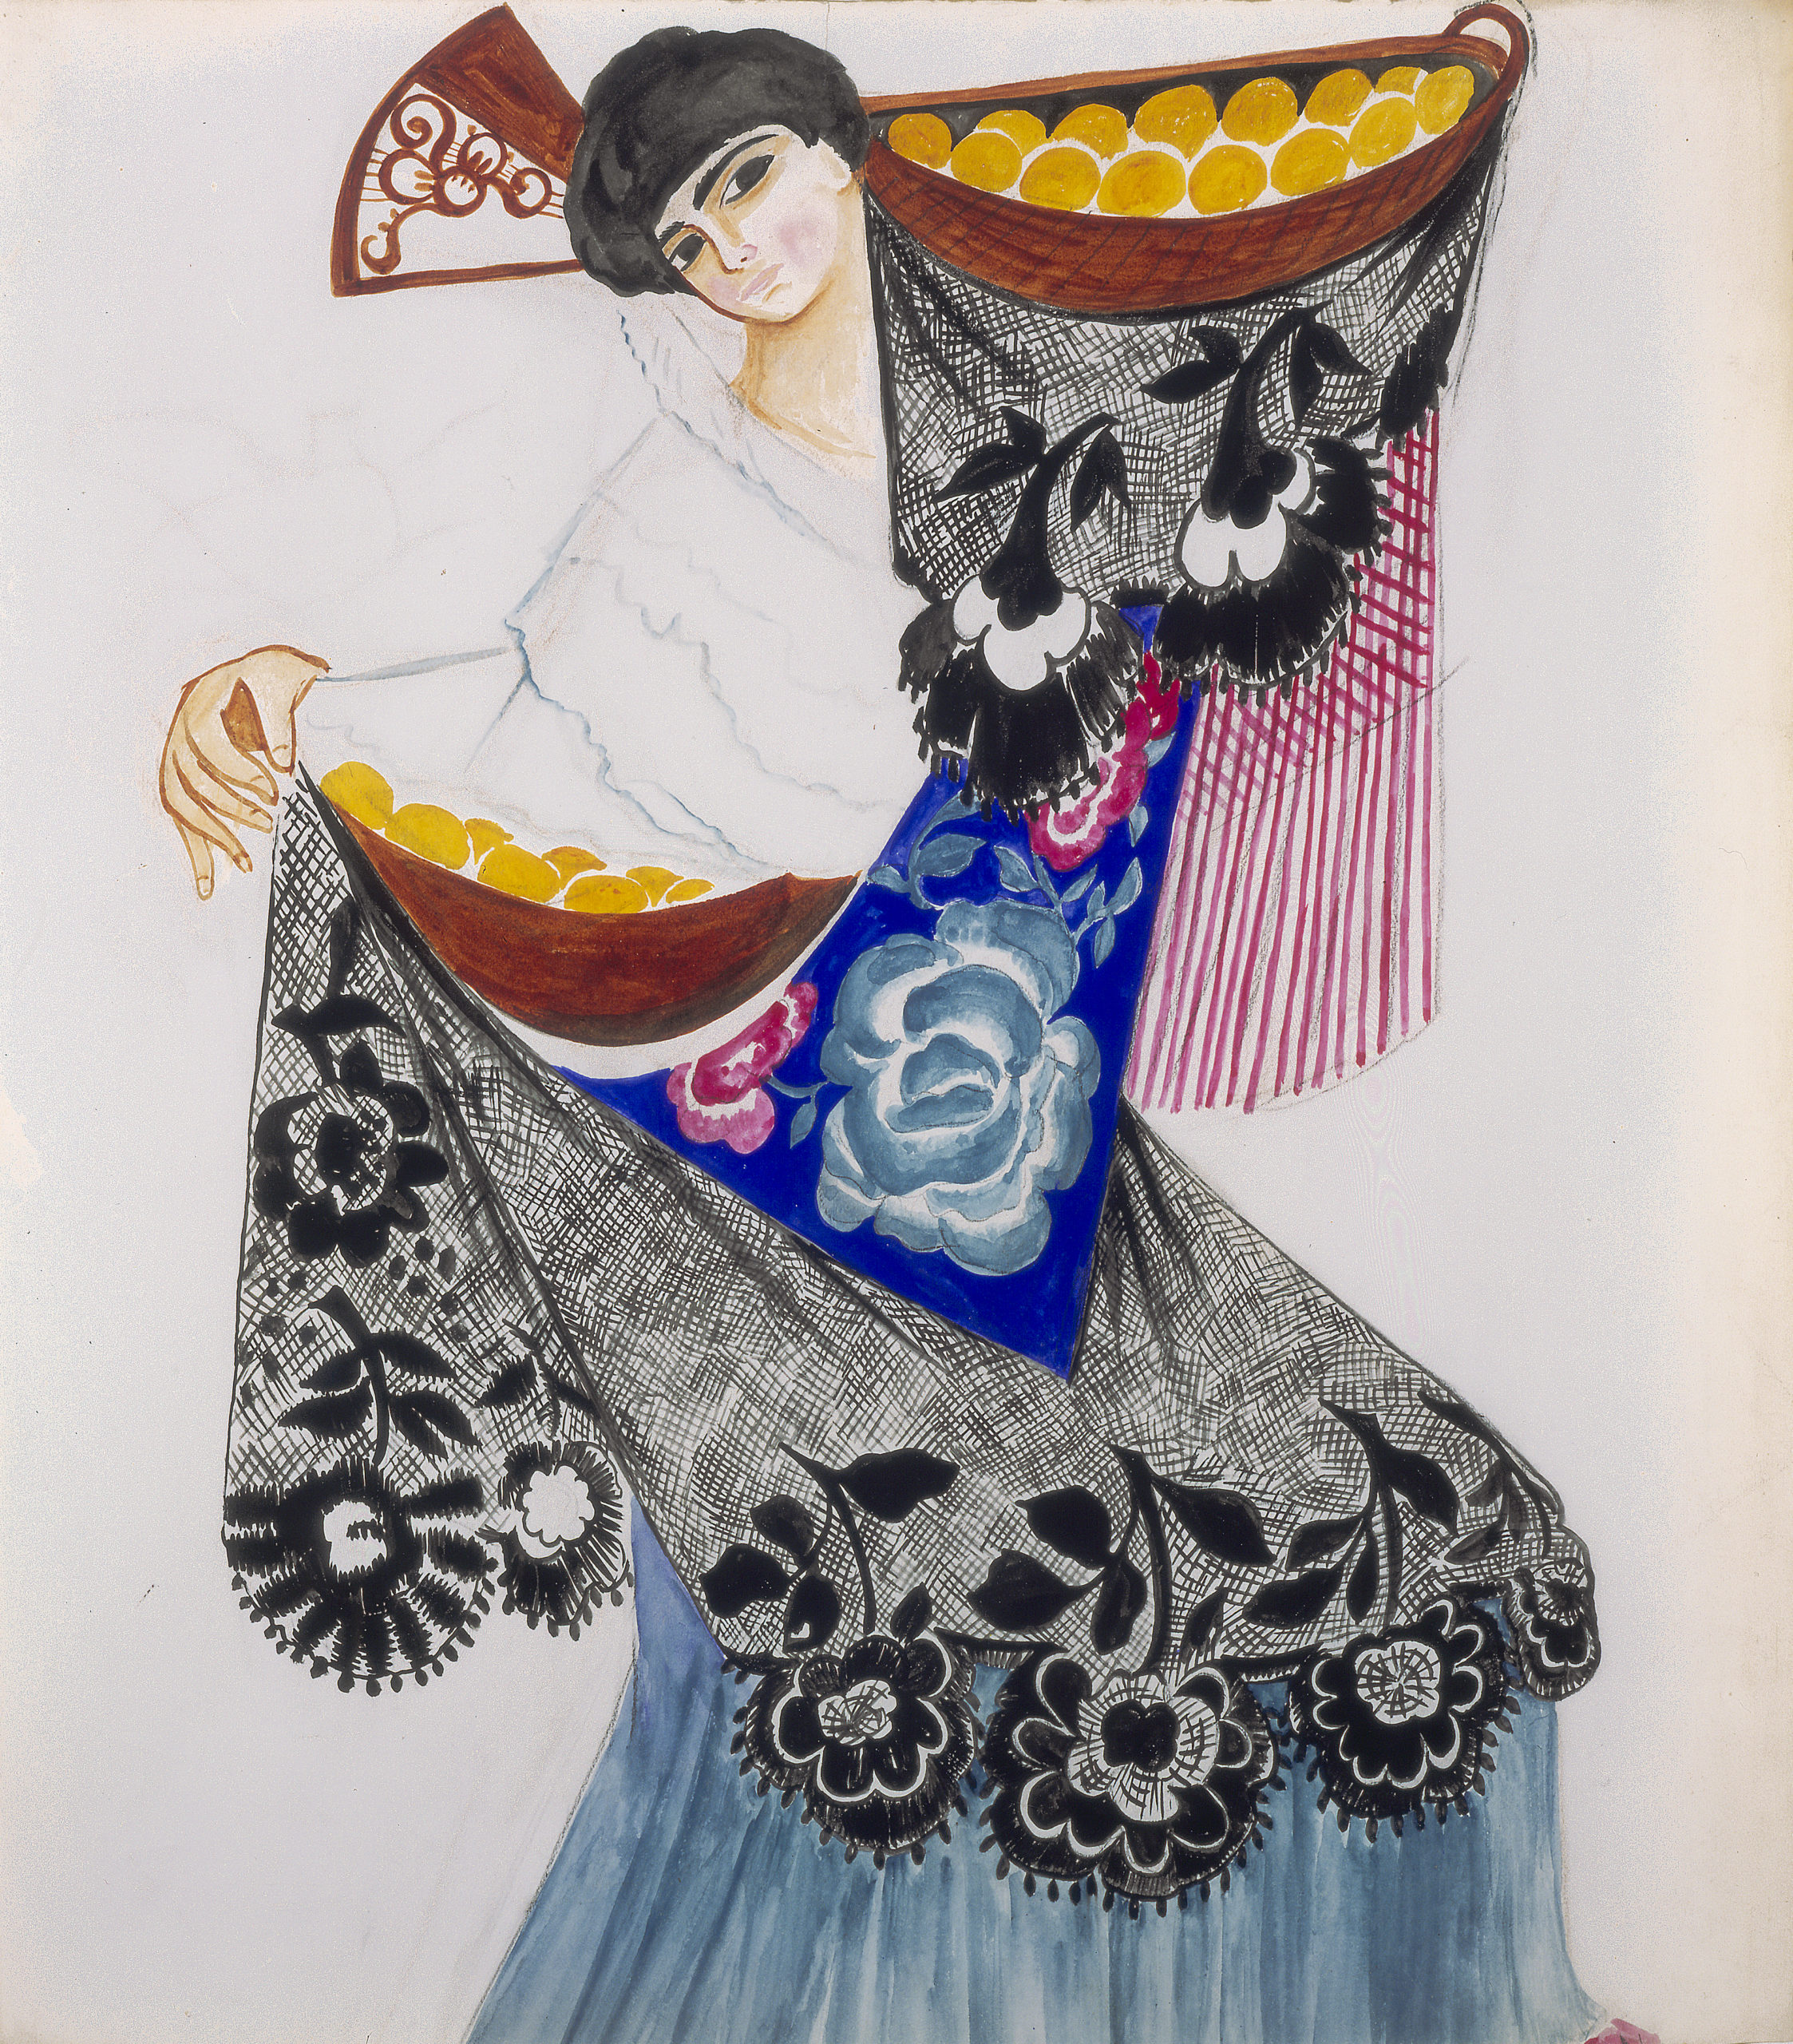 Costume design for a Spanish dancer with oranges. Dancing woman in colorful traditional costume, carrying a basket of oranges aloft.